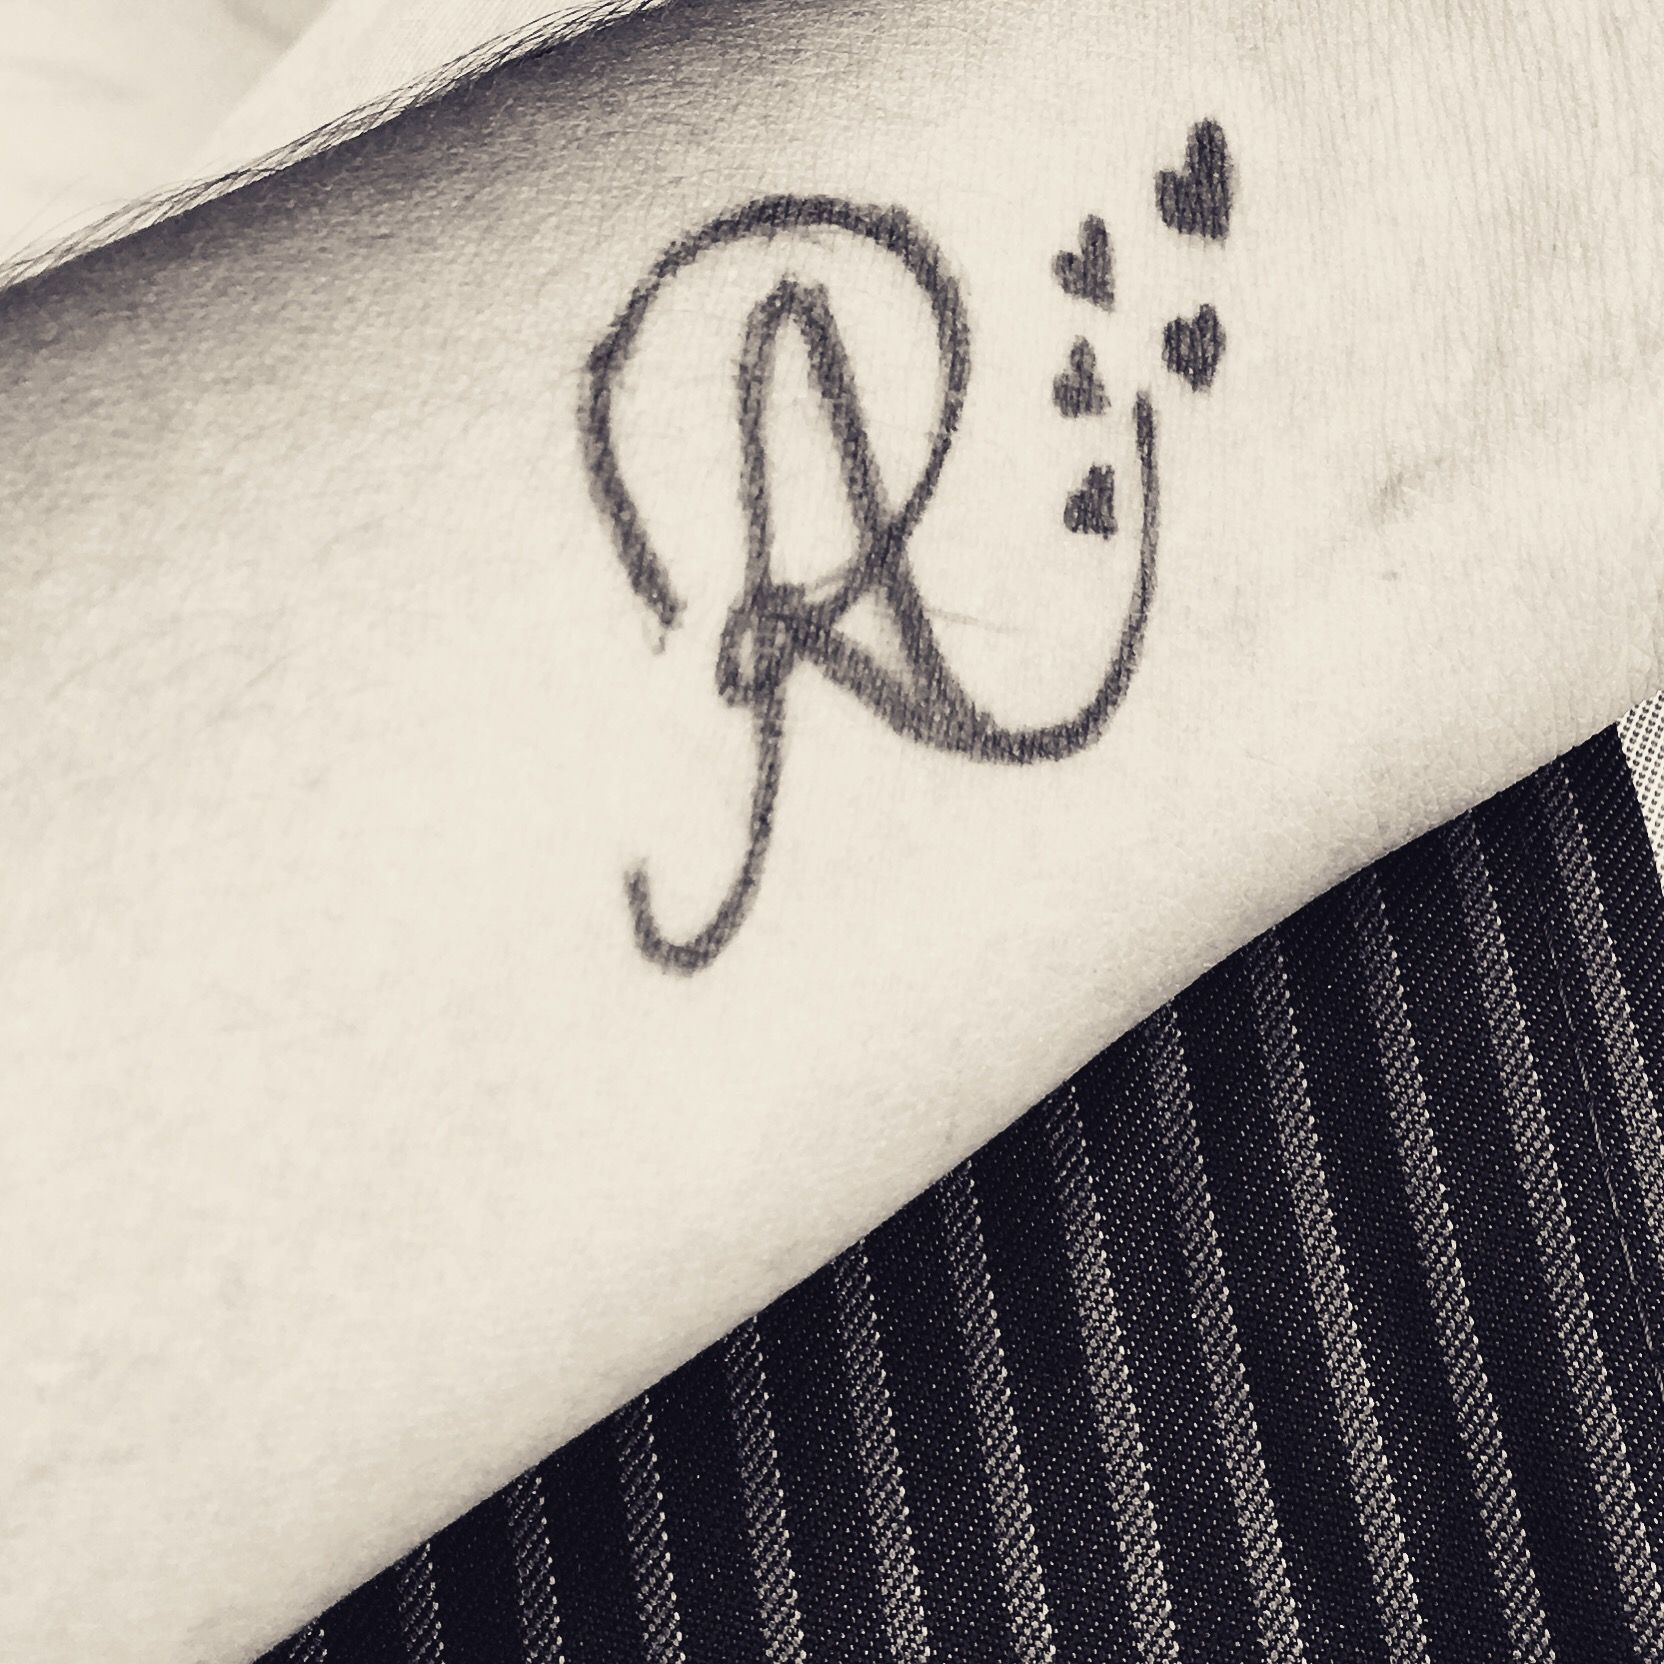 Relationship Love Letter R Tattoo With Heart Letter R Tattoo Alphabet Tattoo Designs Tattoo Lettering Alphabet R name tattoo wallpaper